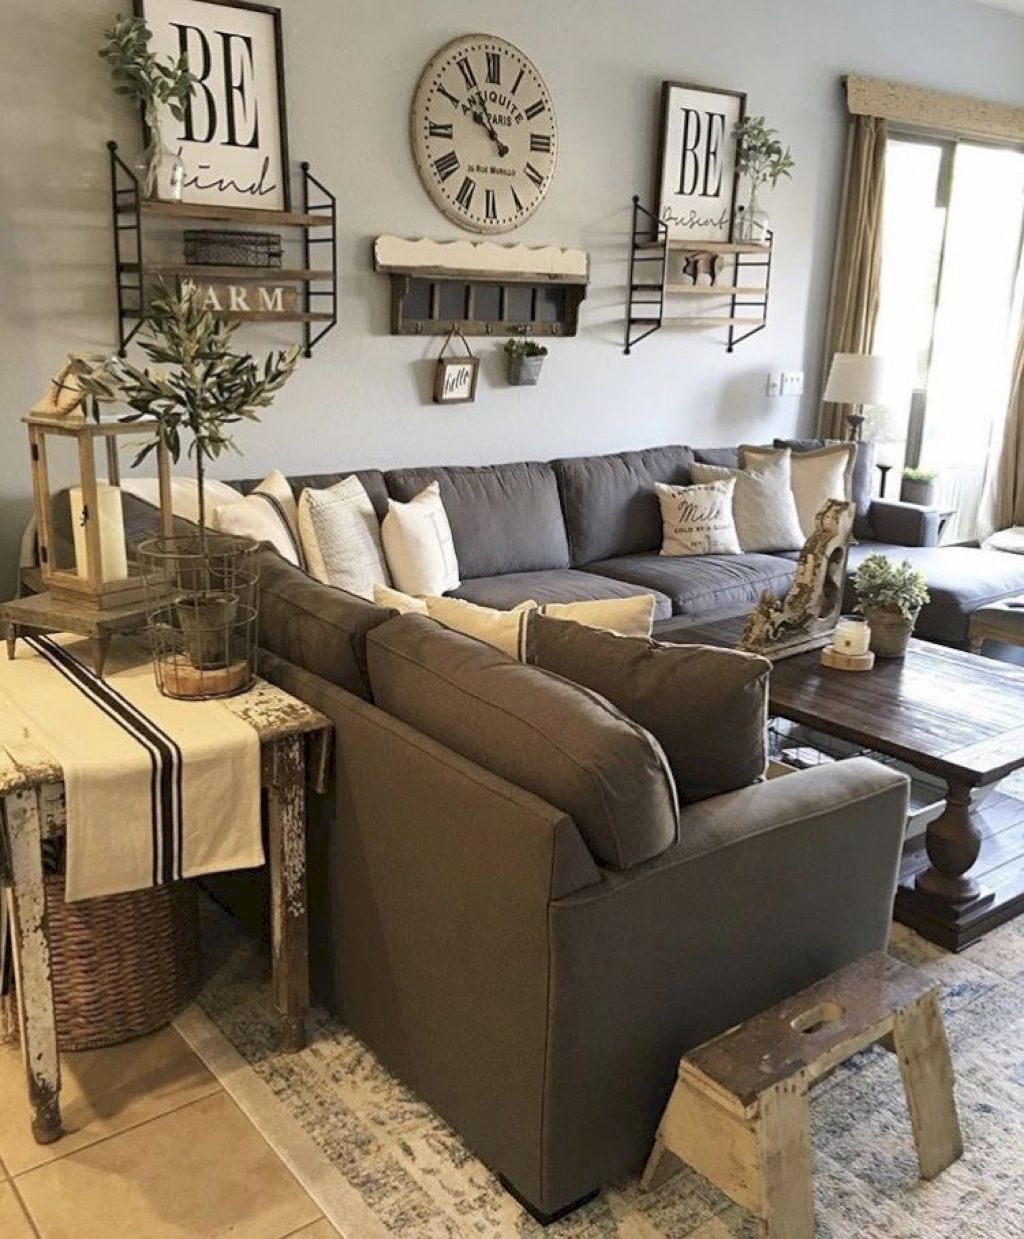 Adorable 35 Best Modern Farmhouse Living Room Decor Ideas Https Homeyli Modern Farmhouse Living Room Decor Farmhouse Decor Living Room Farm House Living Room